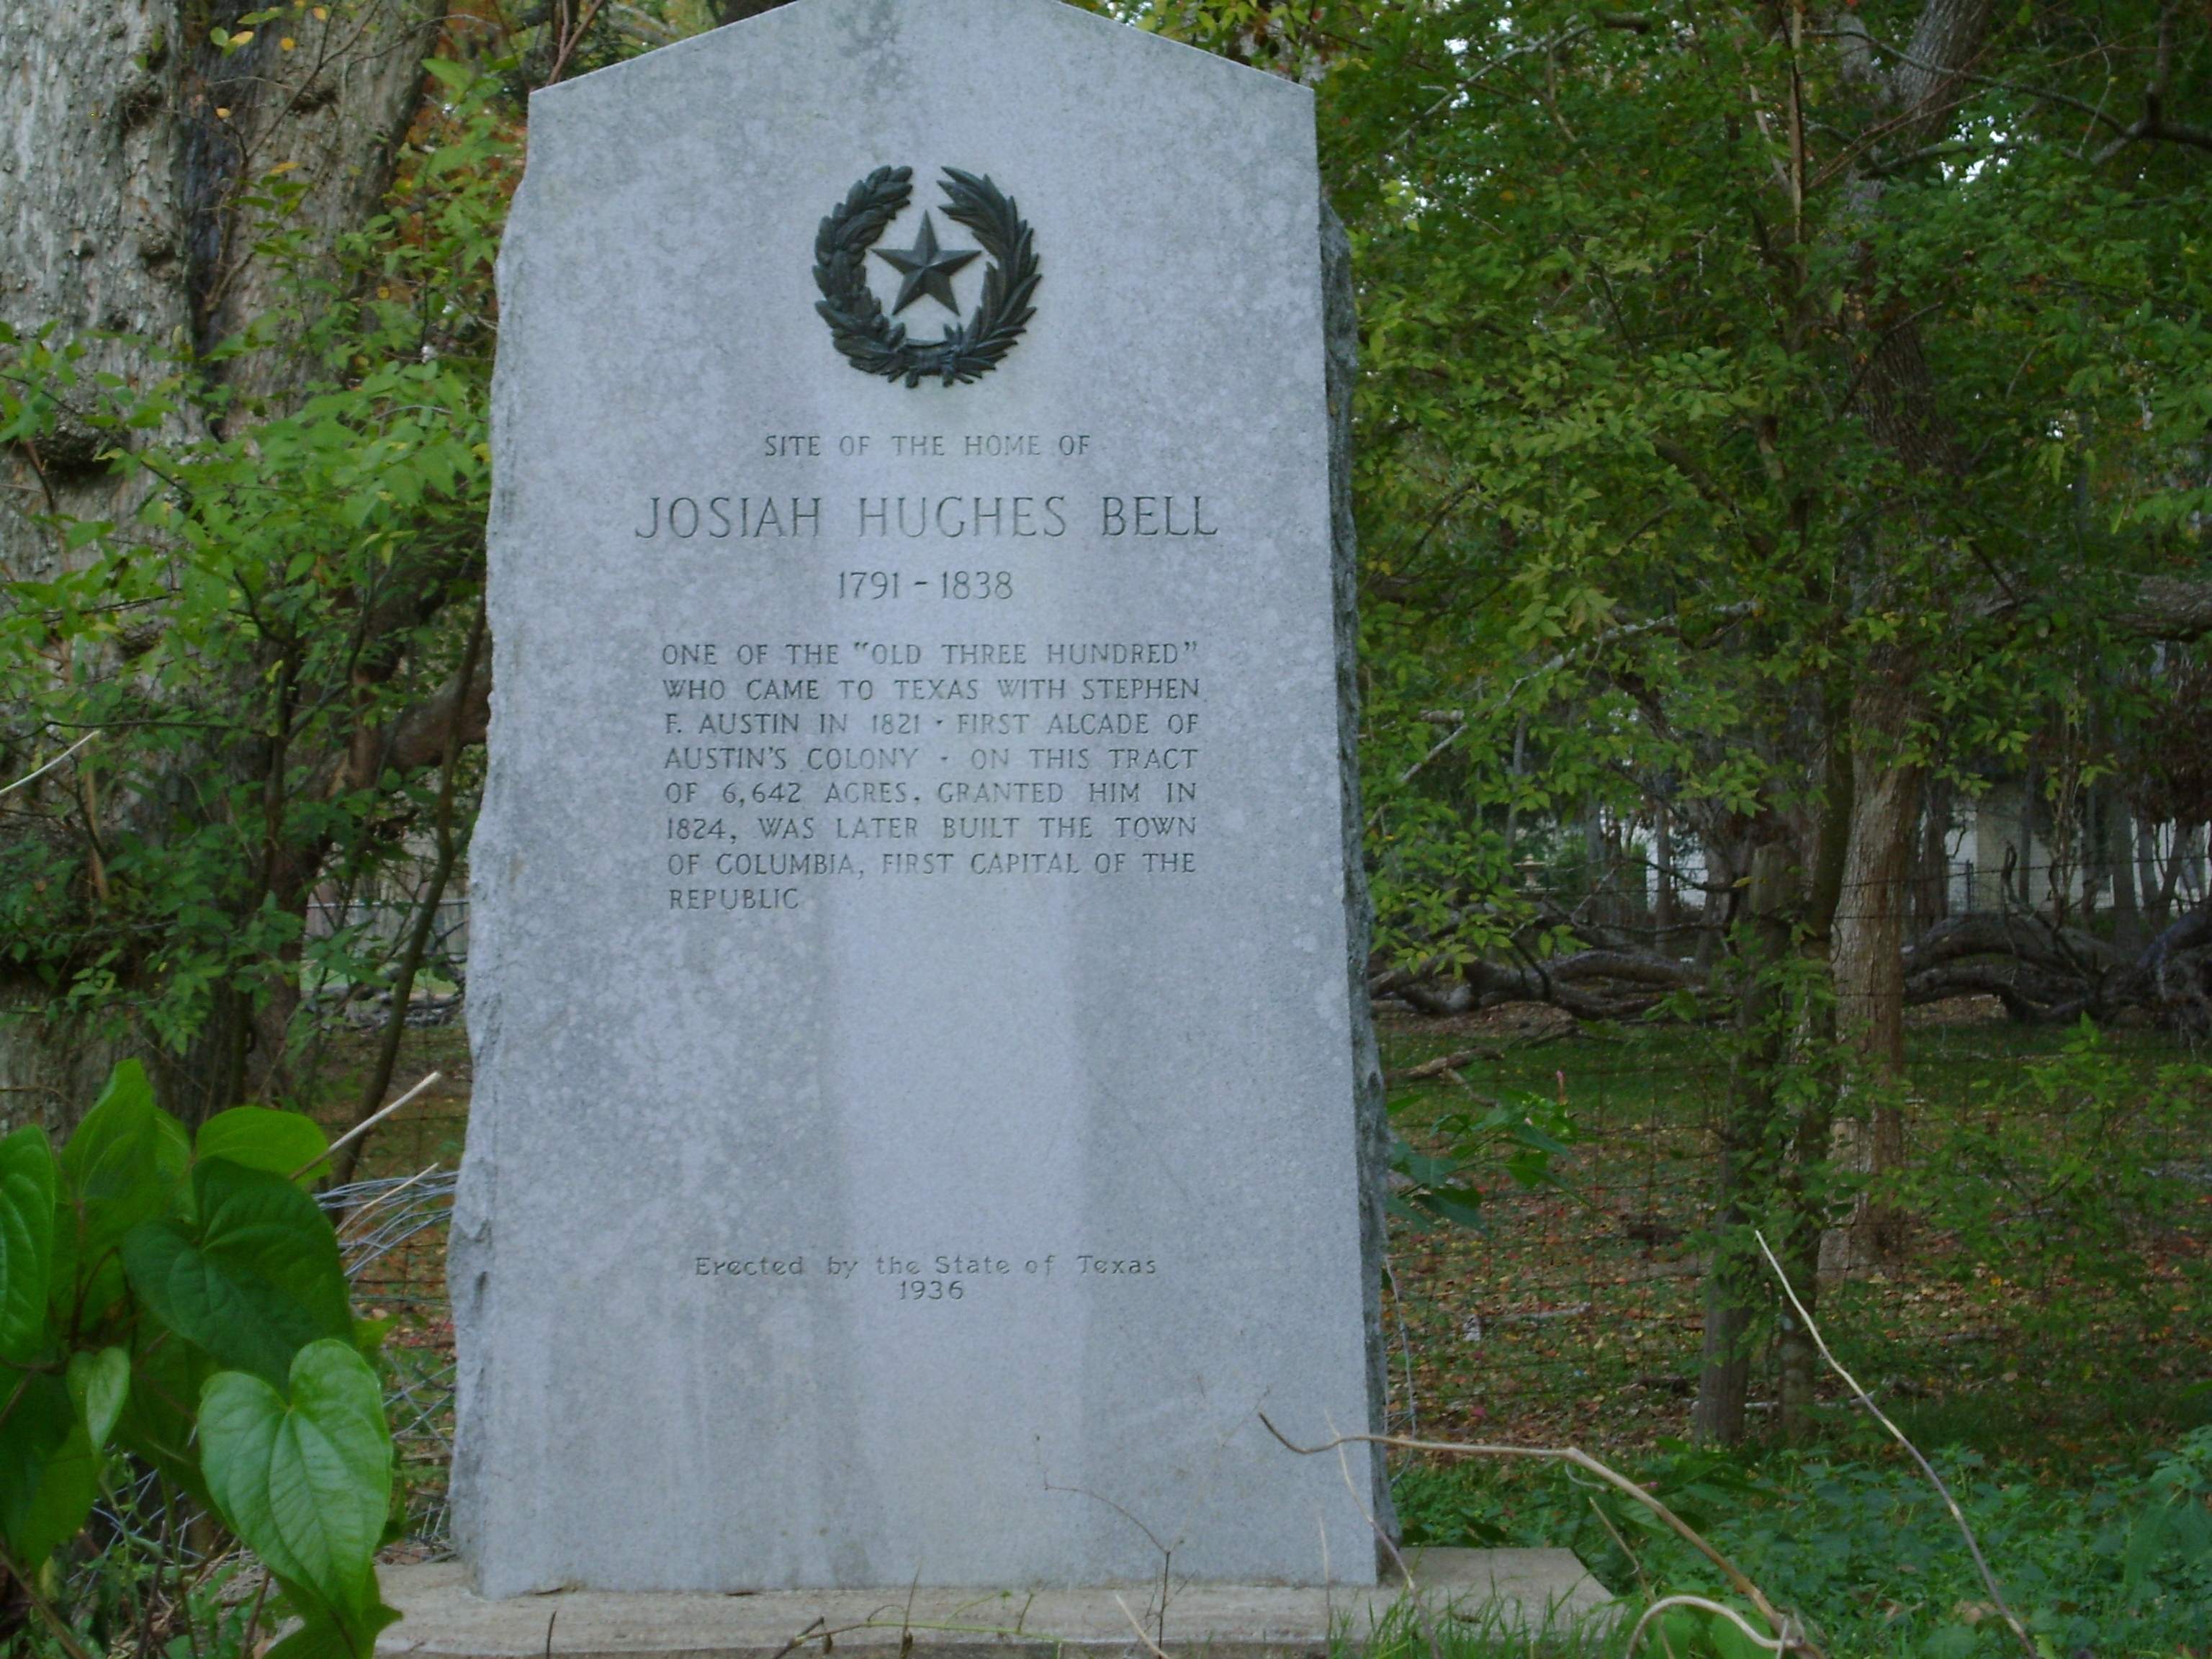 Site of the home of Josiah Hughes Bell Marker